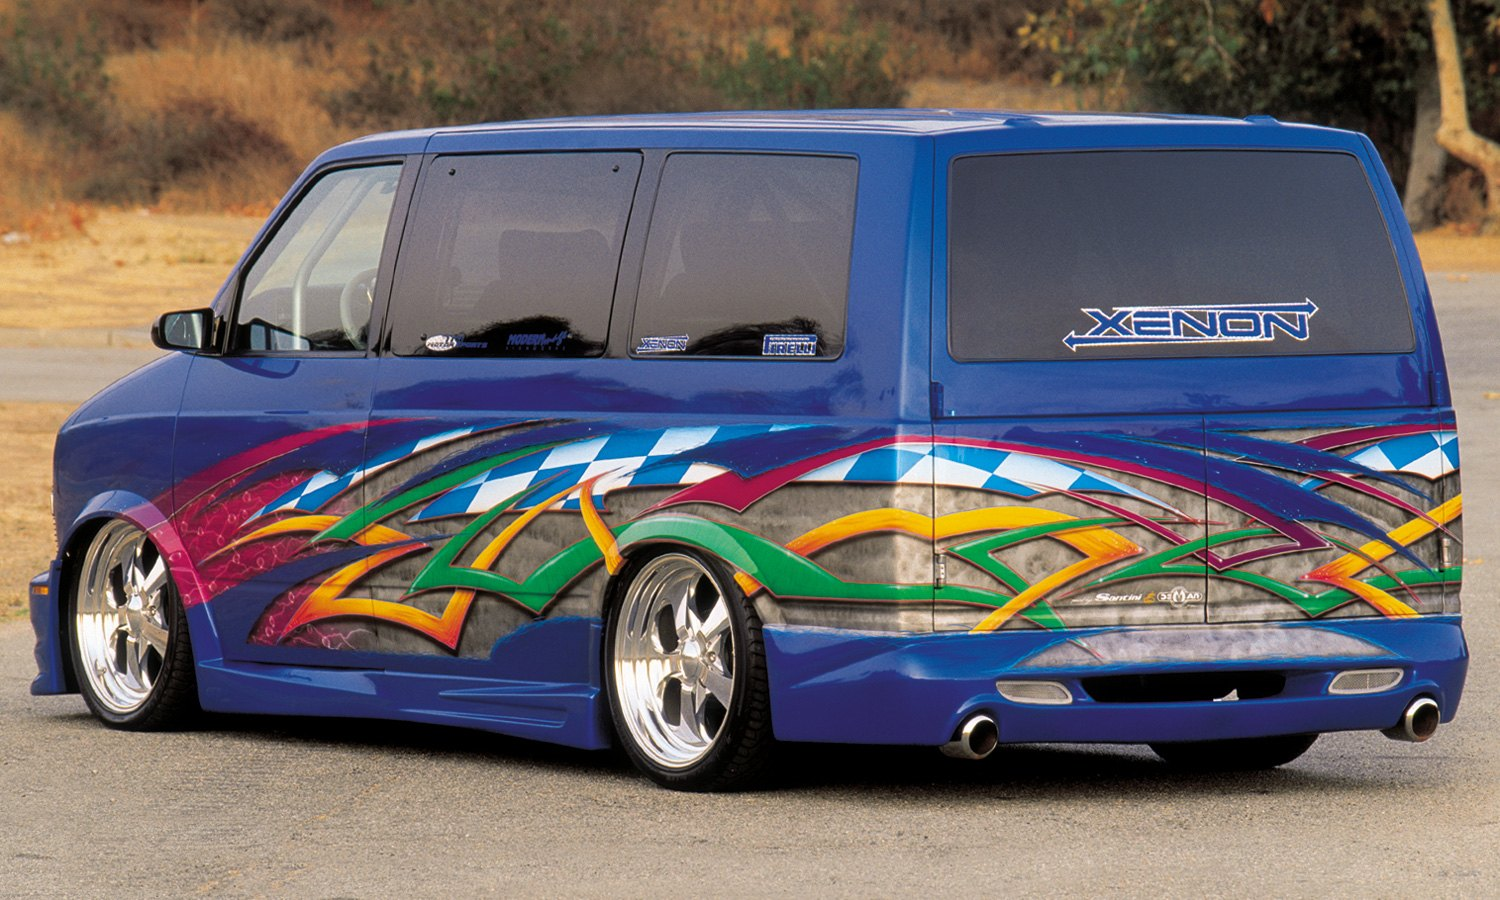 hight resolution of xenon body kit chevy astro rear view